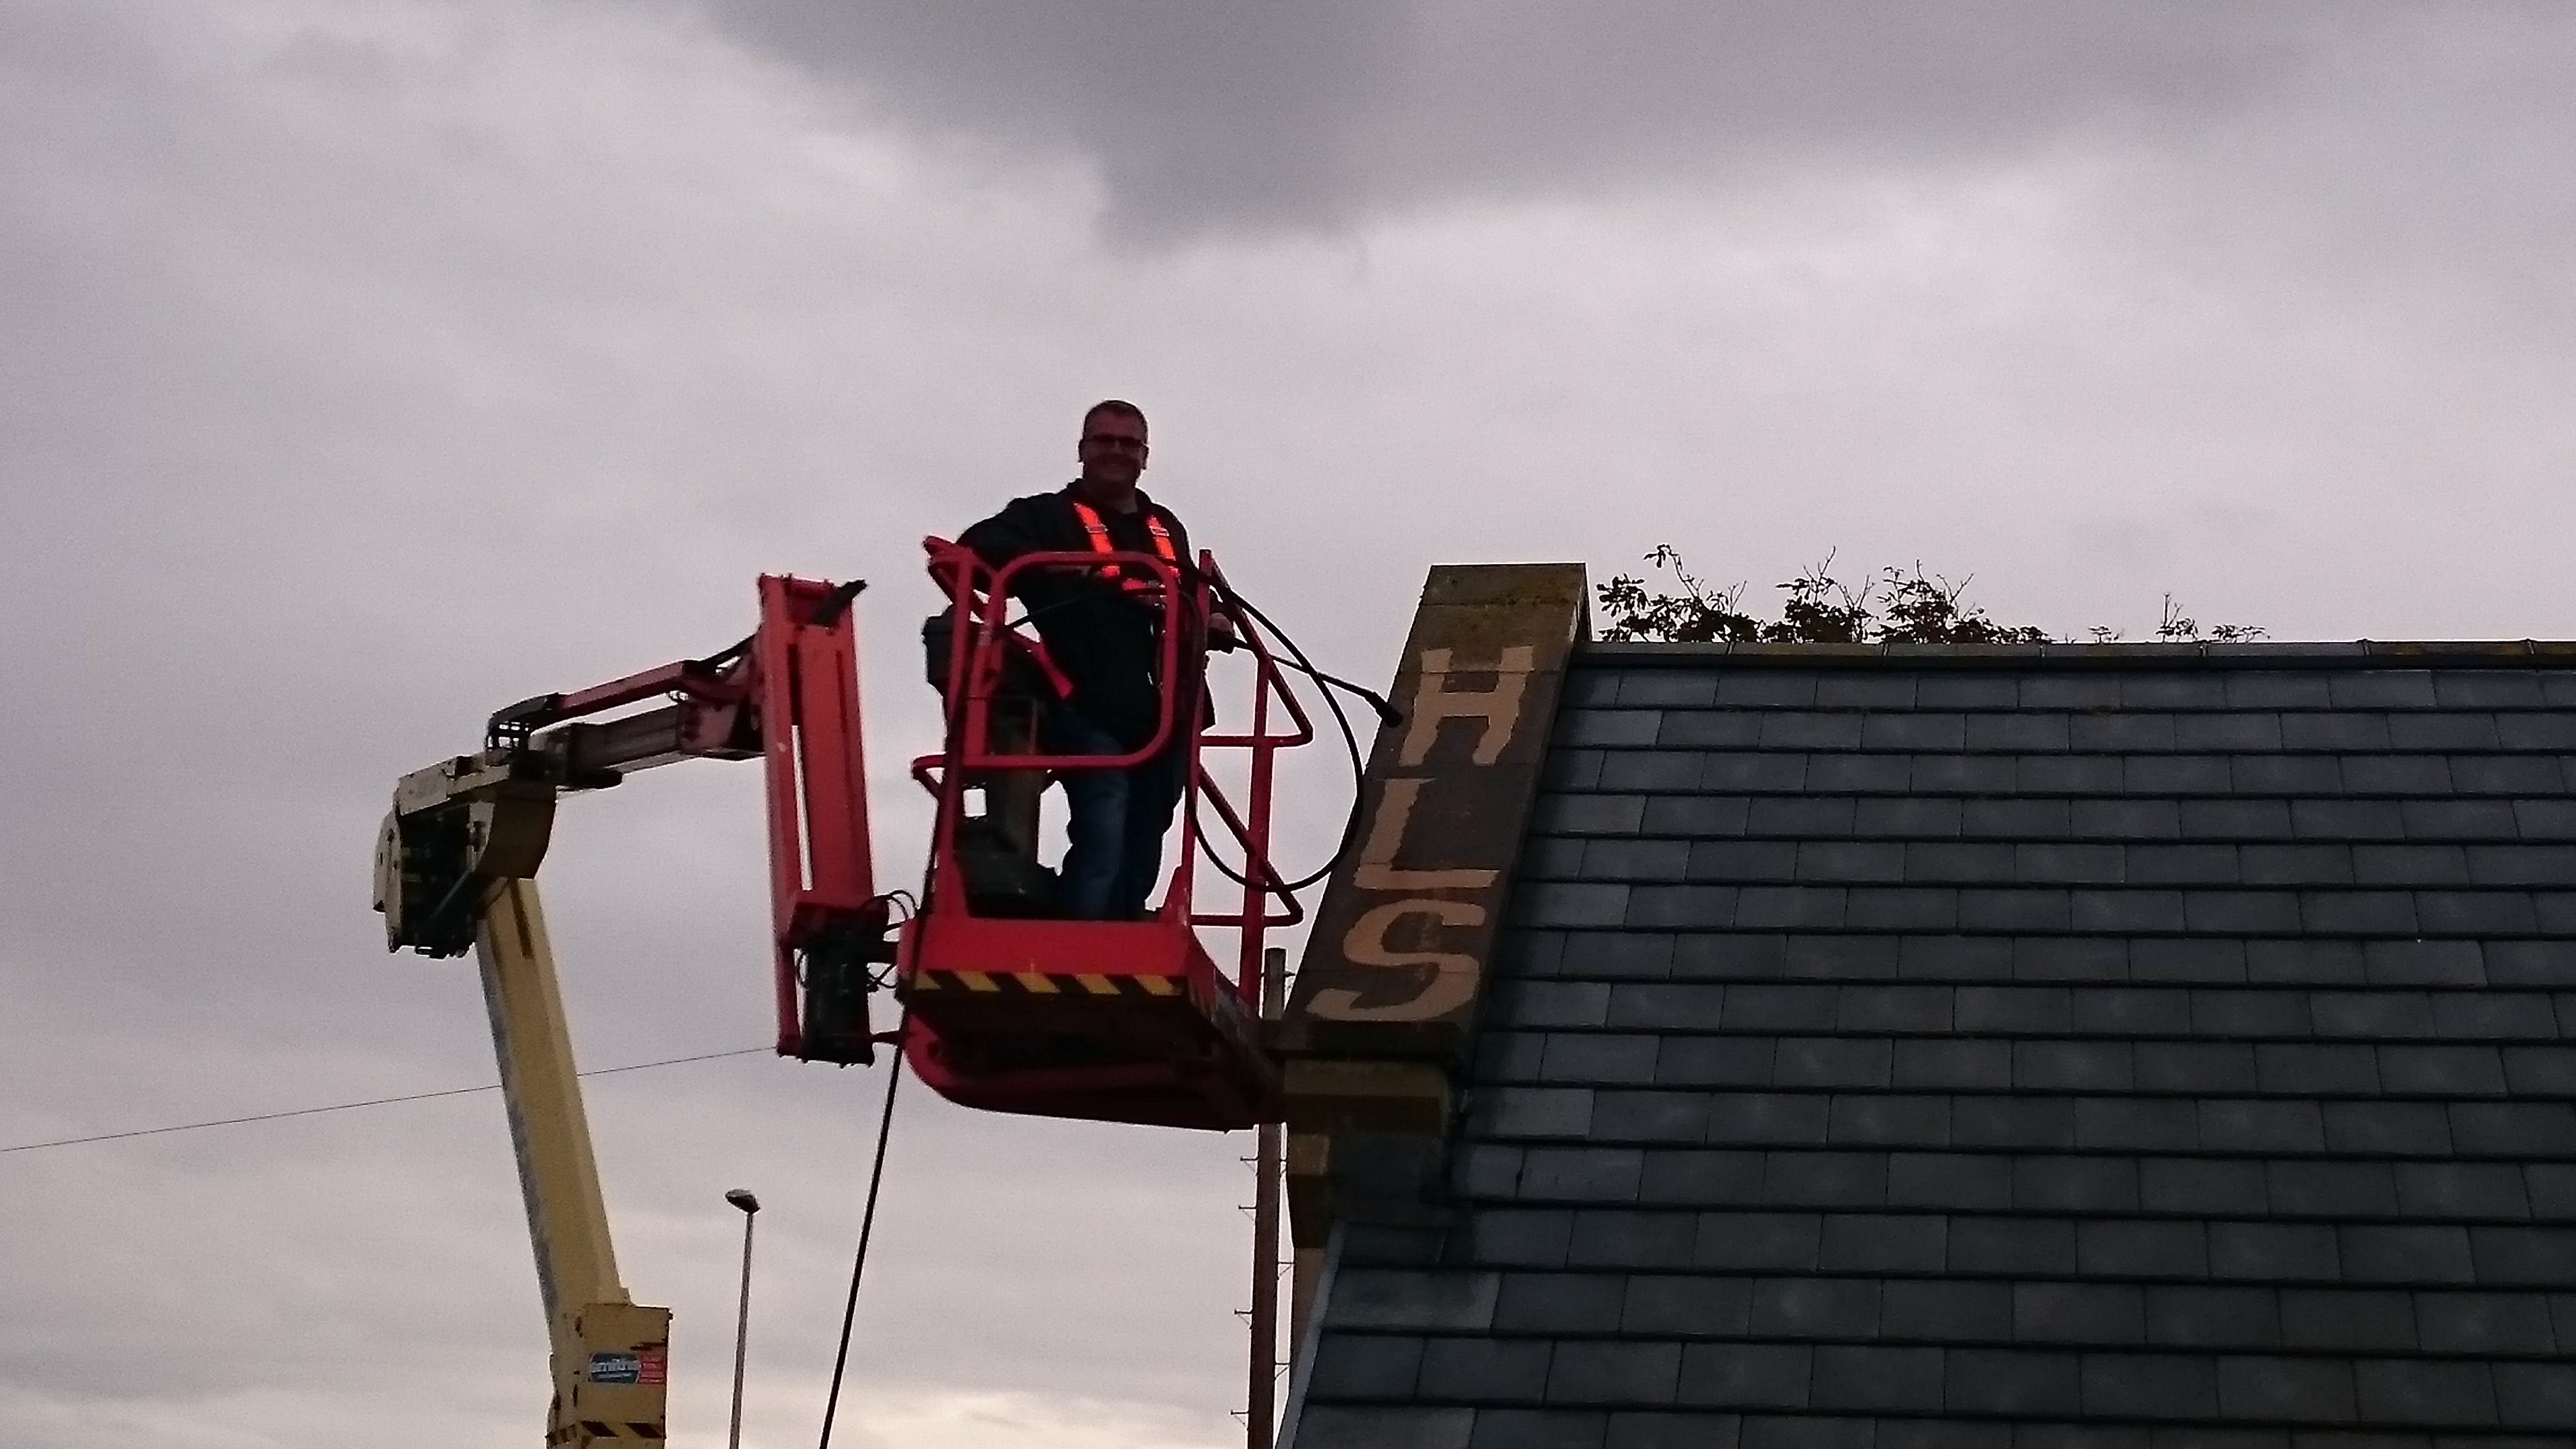 IPAf technician at the top a a cherry picker carrying a pressure washing lance carries out high level cleaning work at a school in Blackpool, Lancashire